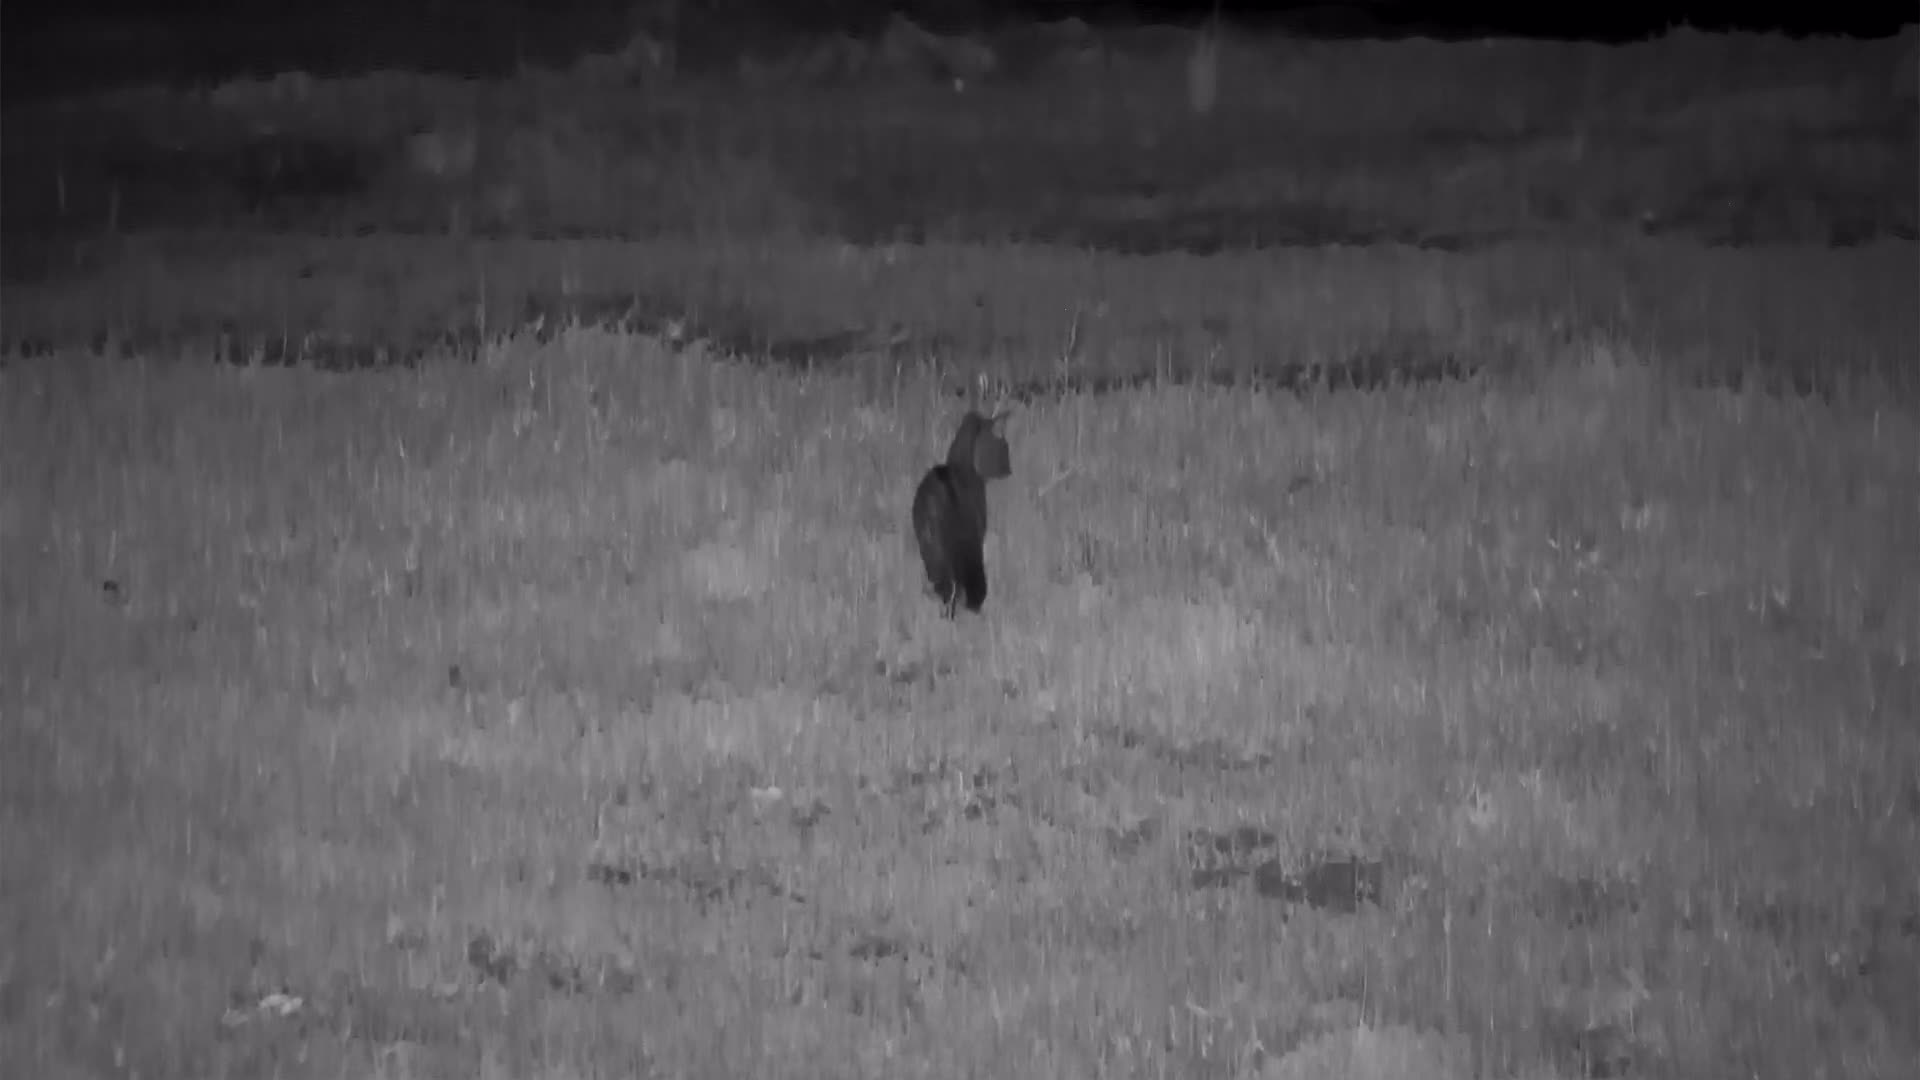 VIDEO: Genet searching for food